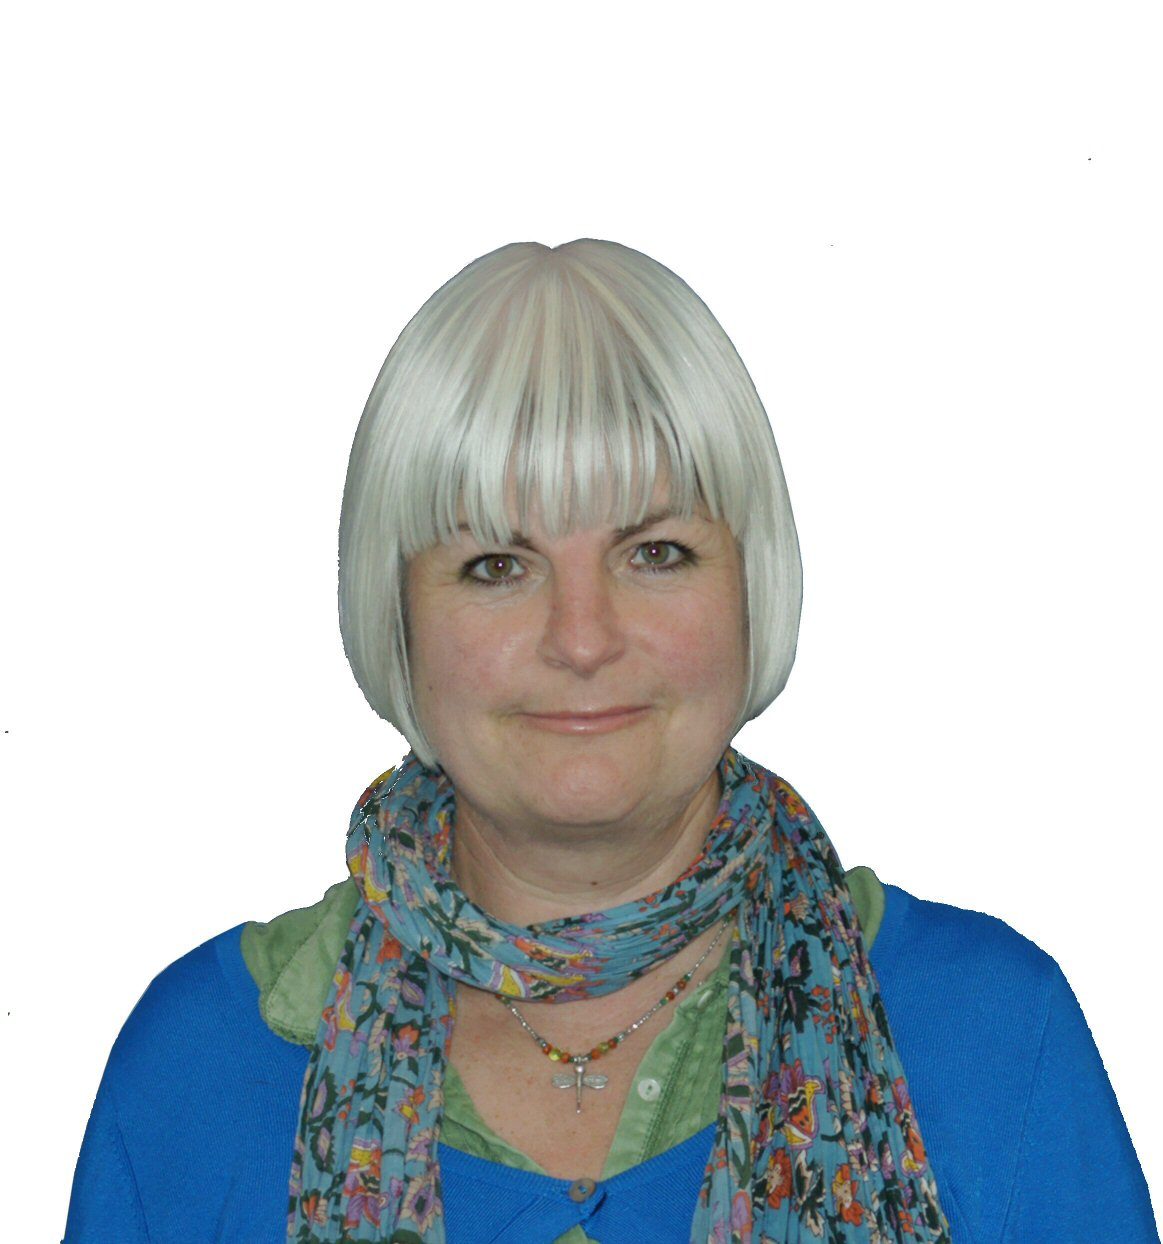 Picture of Wyre Forest Candidate Natalie McVey